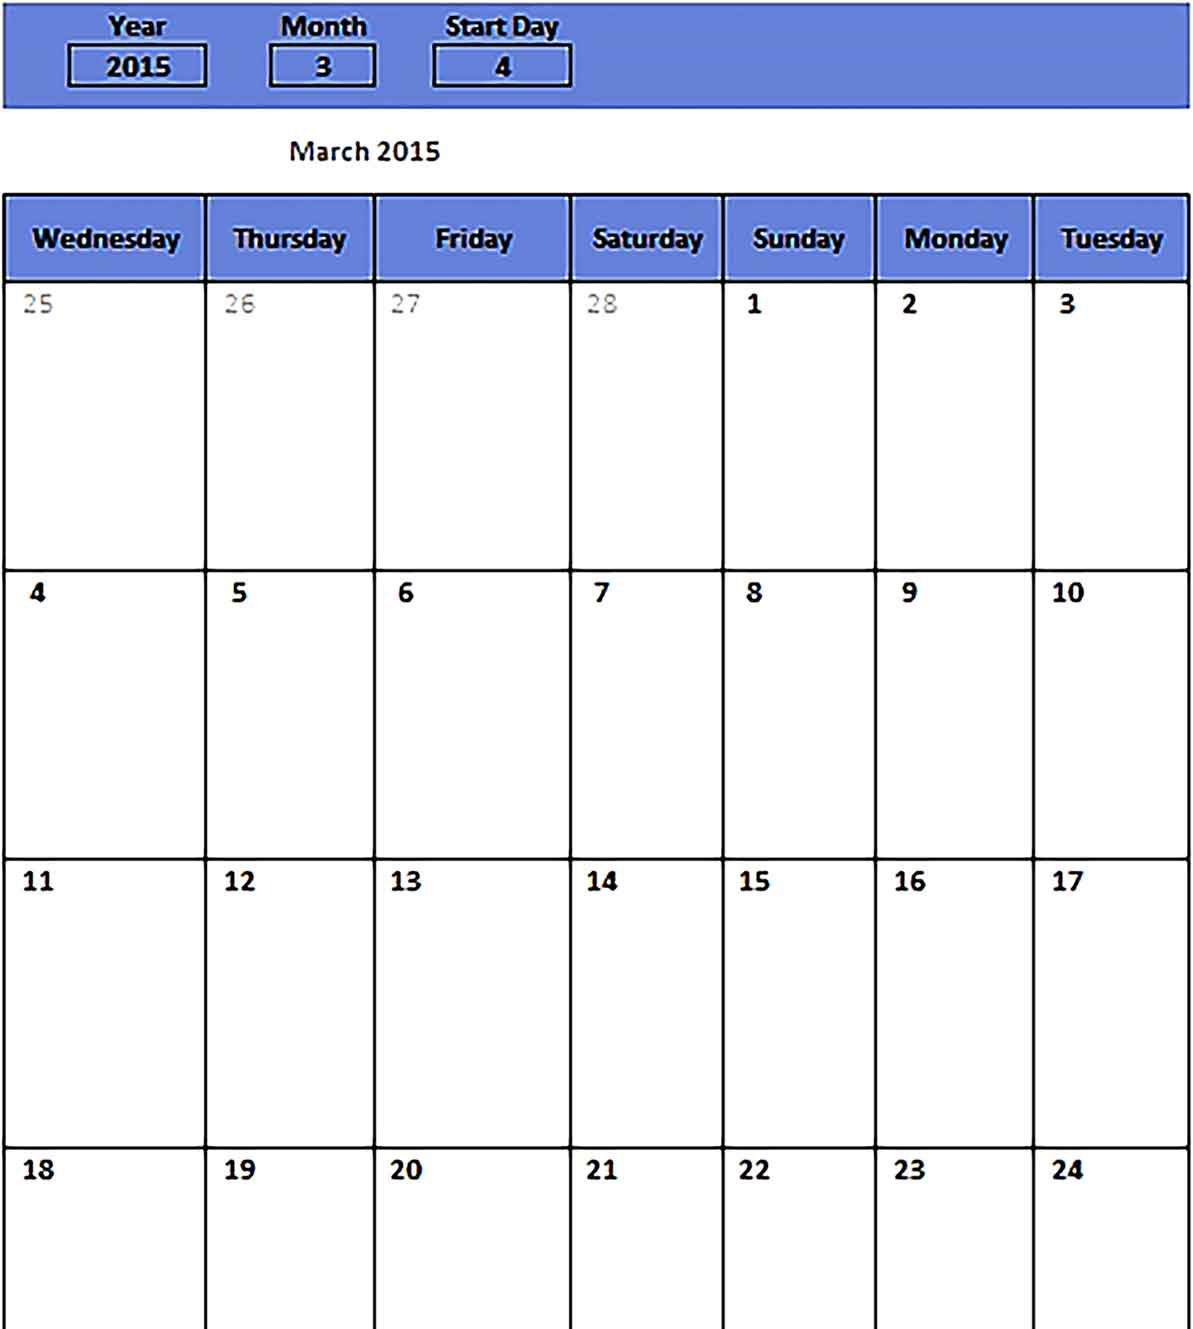 Template monthly schedule for free Sample